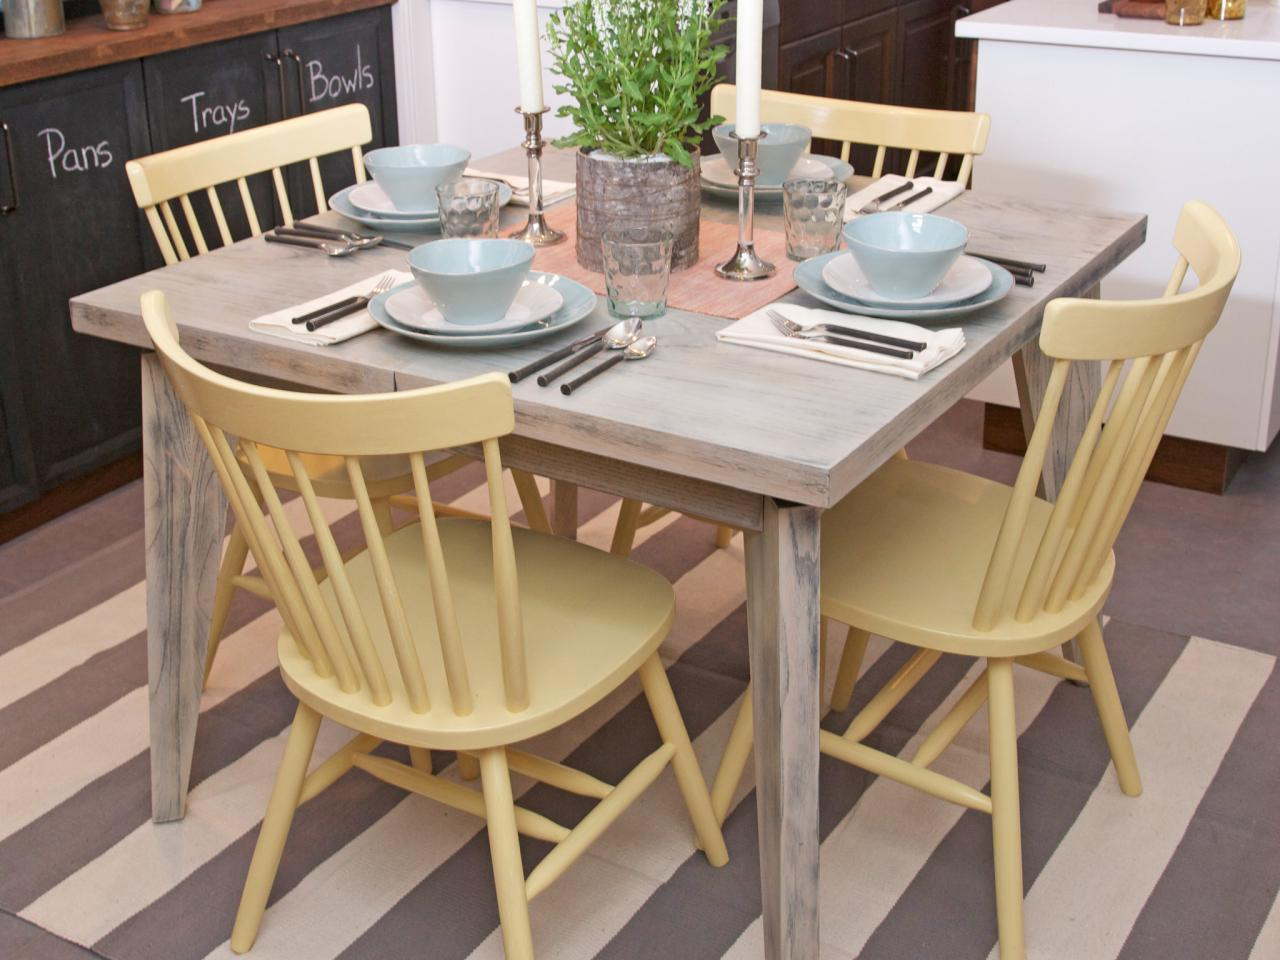 Painting kitchen tables pictures ideas tips from hgtv for Kitchen table designs plans